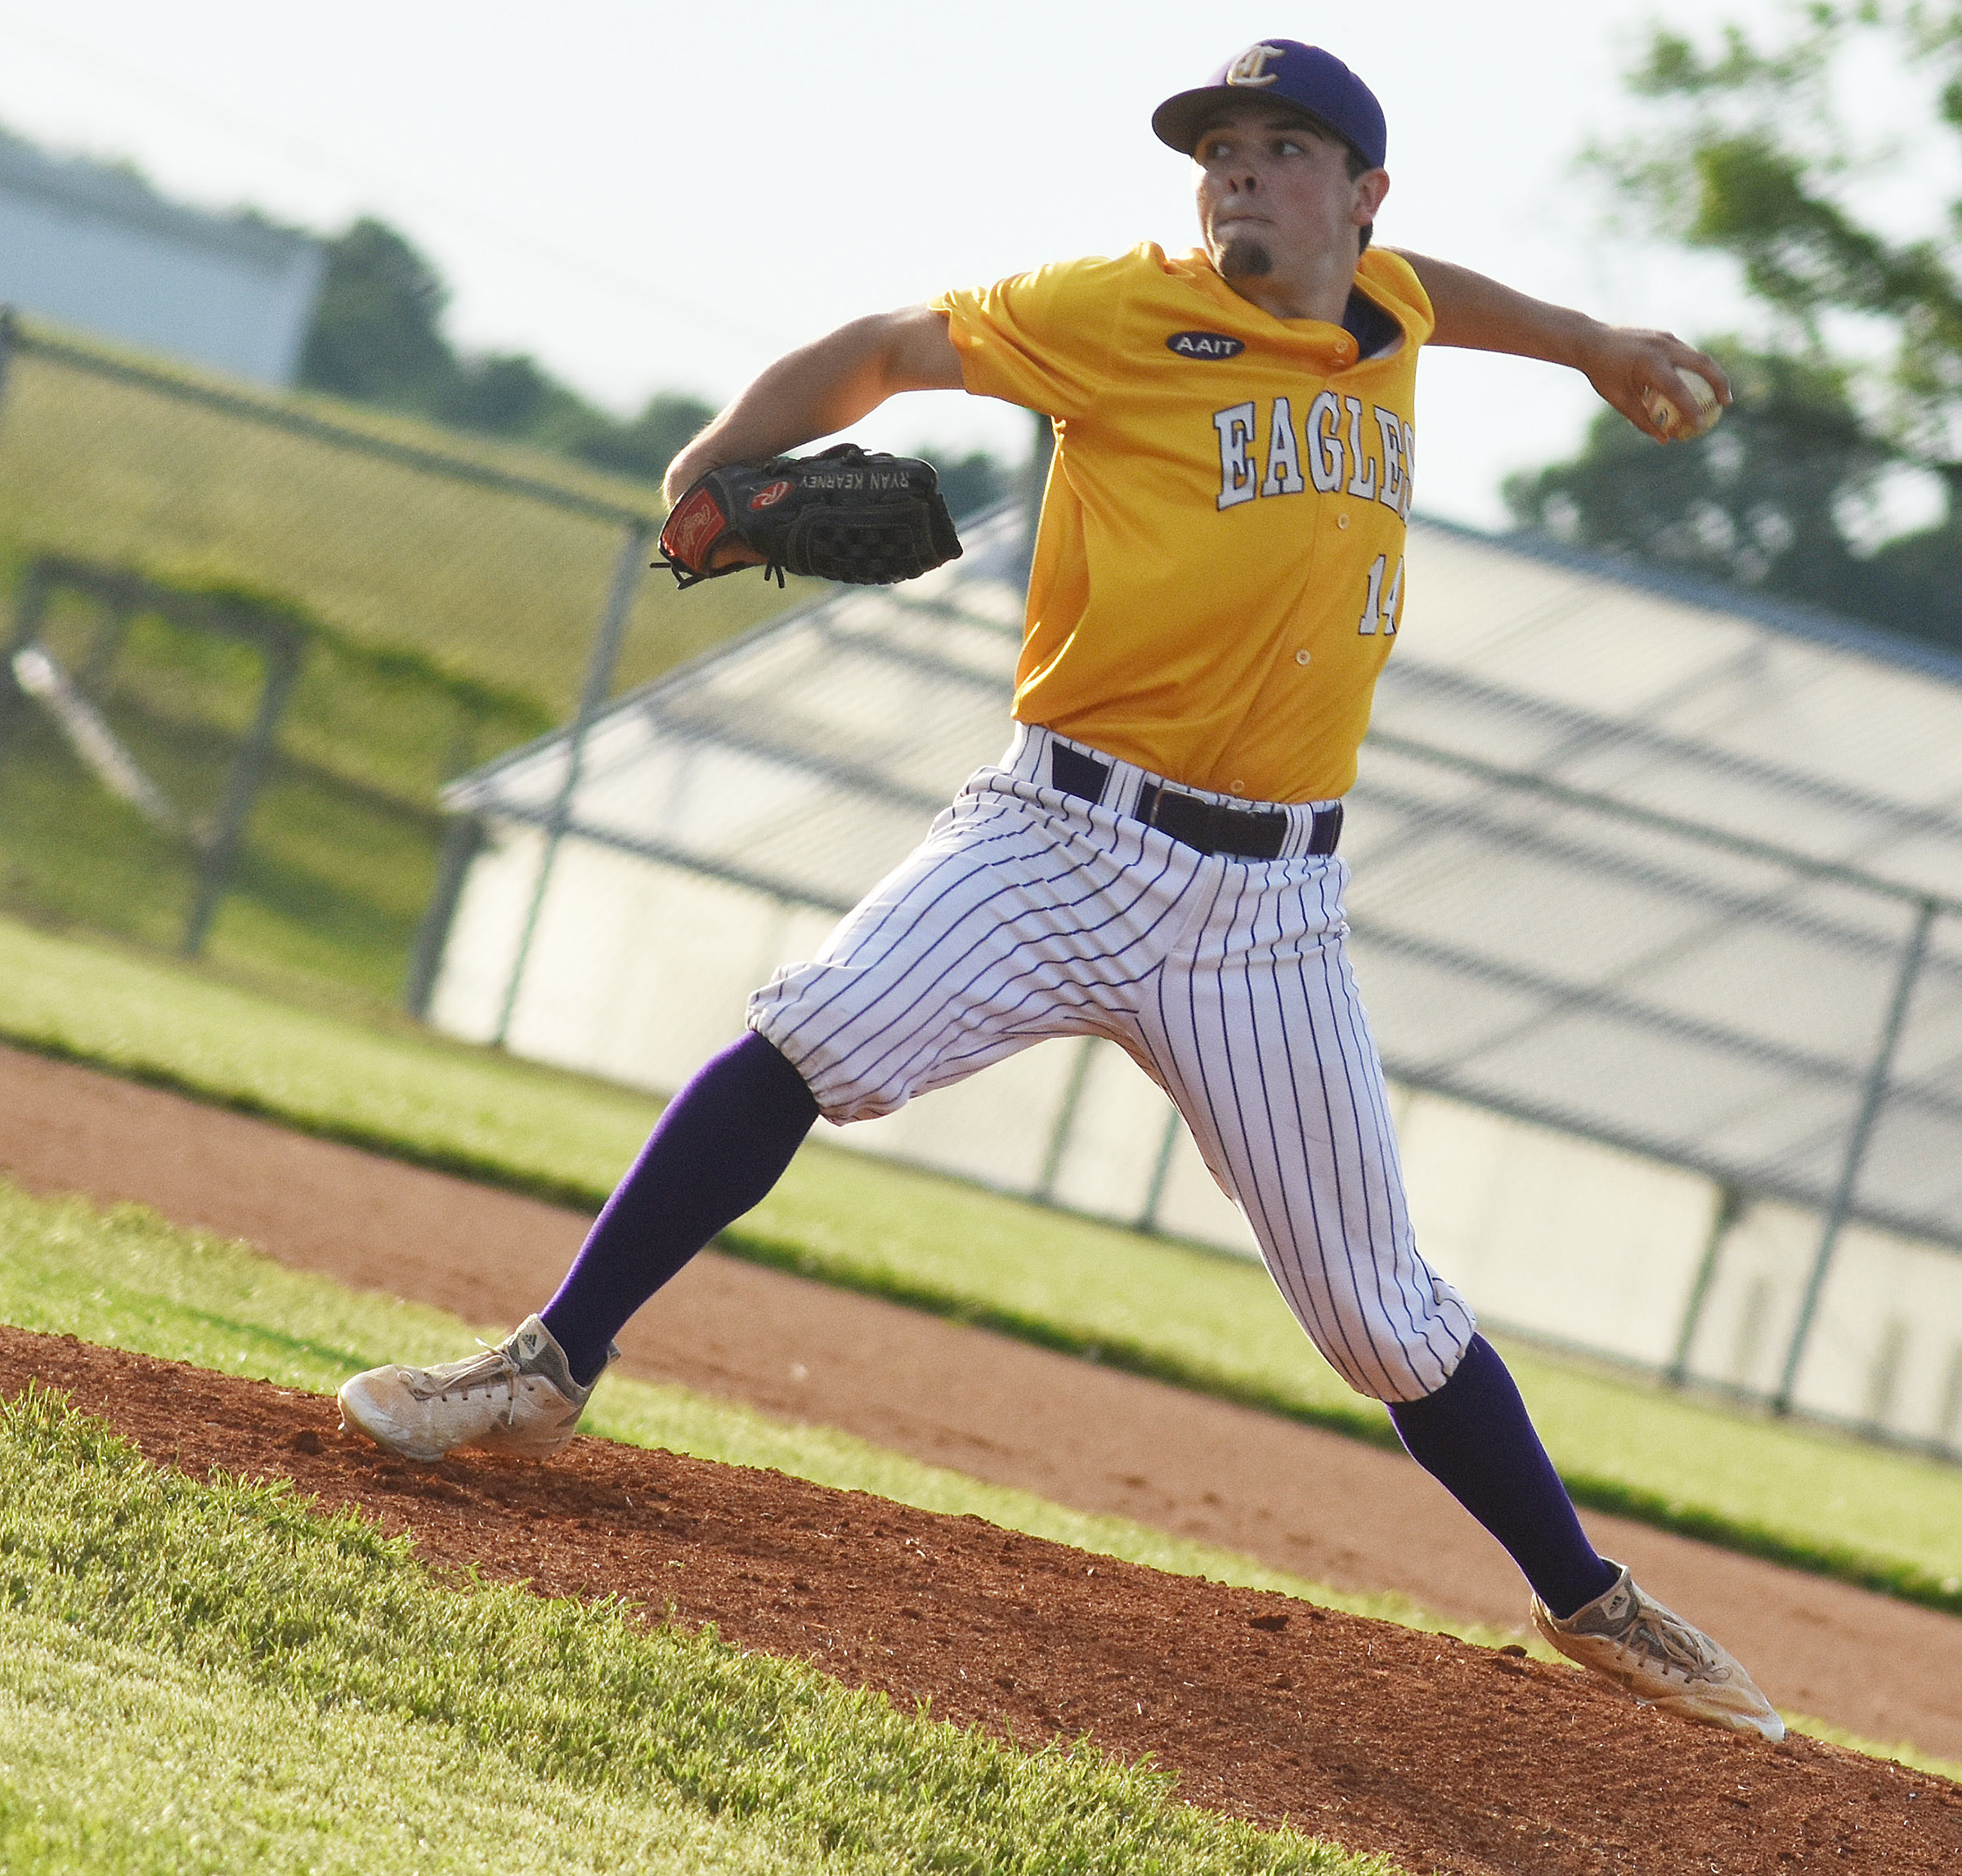 CHS senior Ryan Kearney has been named a Kentucky High School Baseball Coaches Association east/west all-star and to the KHSBCA all-state team. He was also recently named the Fifth Region Baseball Coaches Player of the Year for his performance this season.